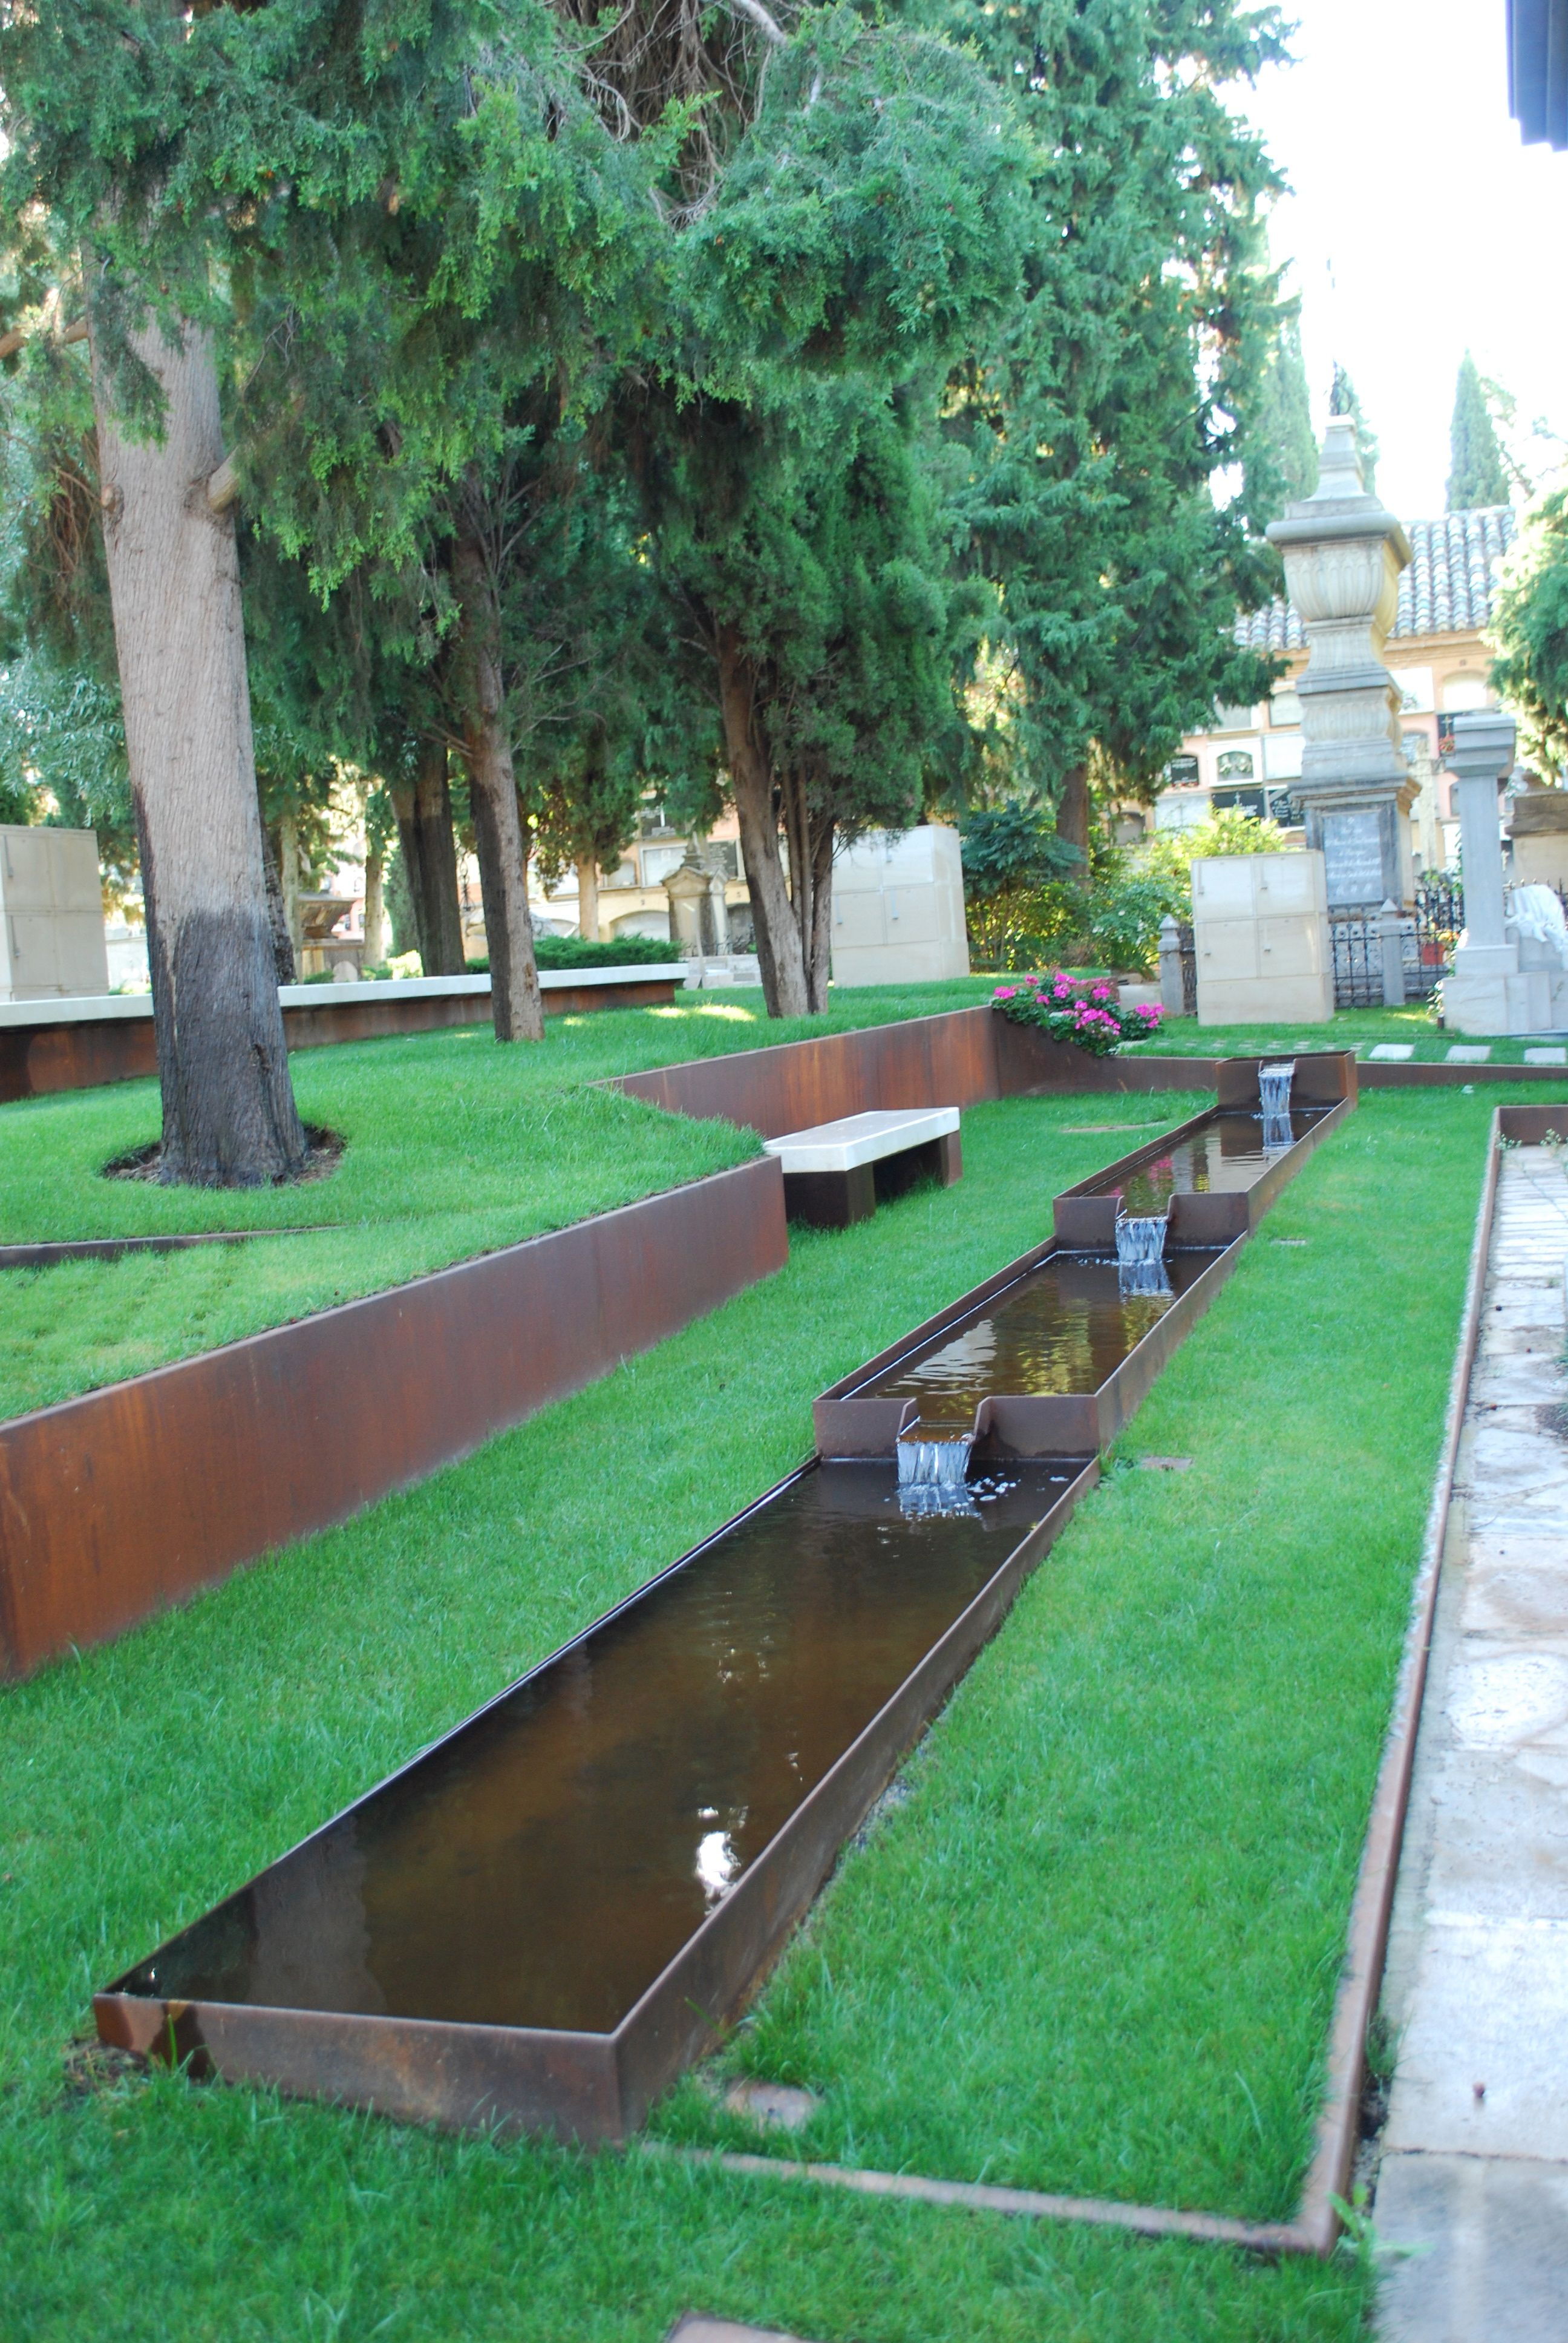 water feature at cemetery | Cemetery | Pinterest | Cemetery